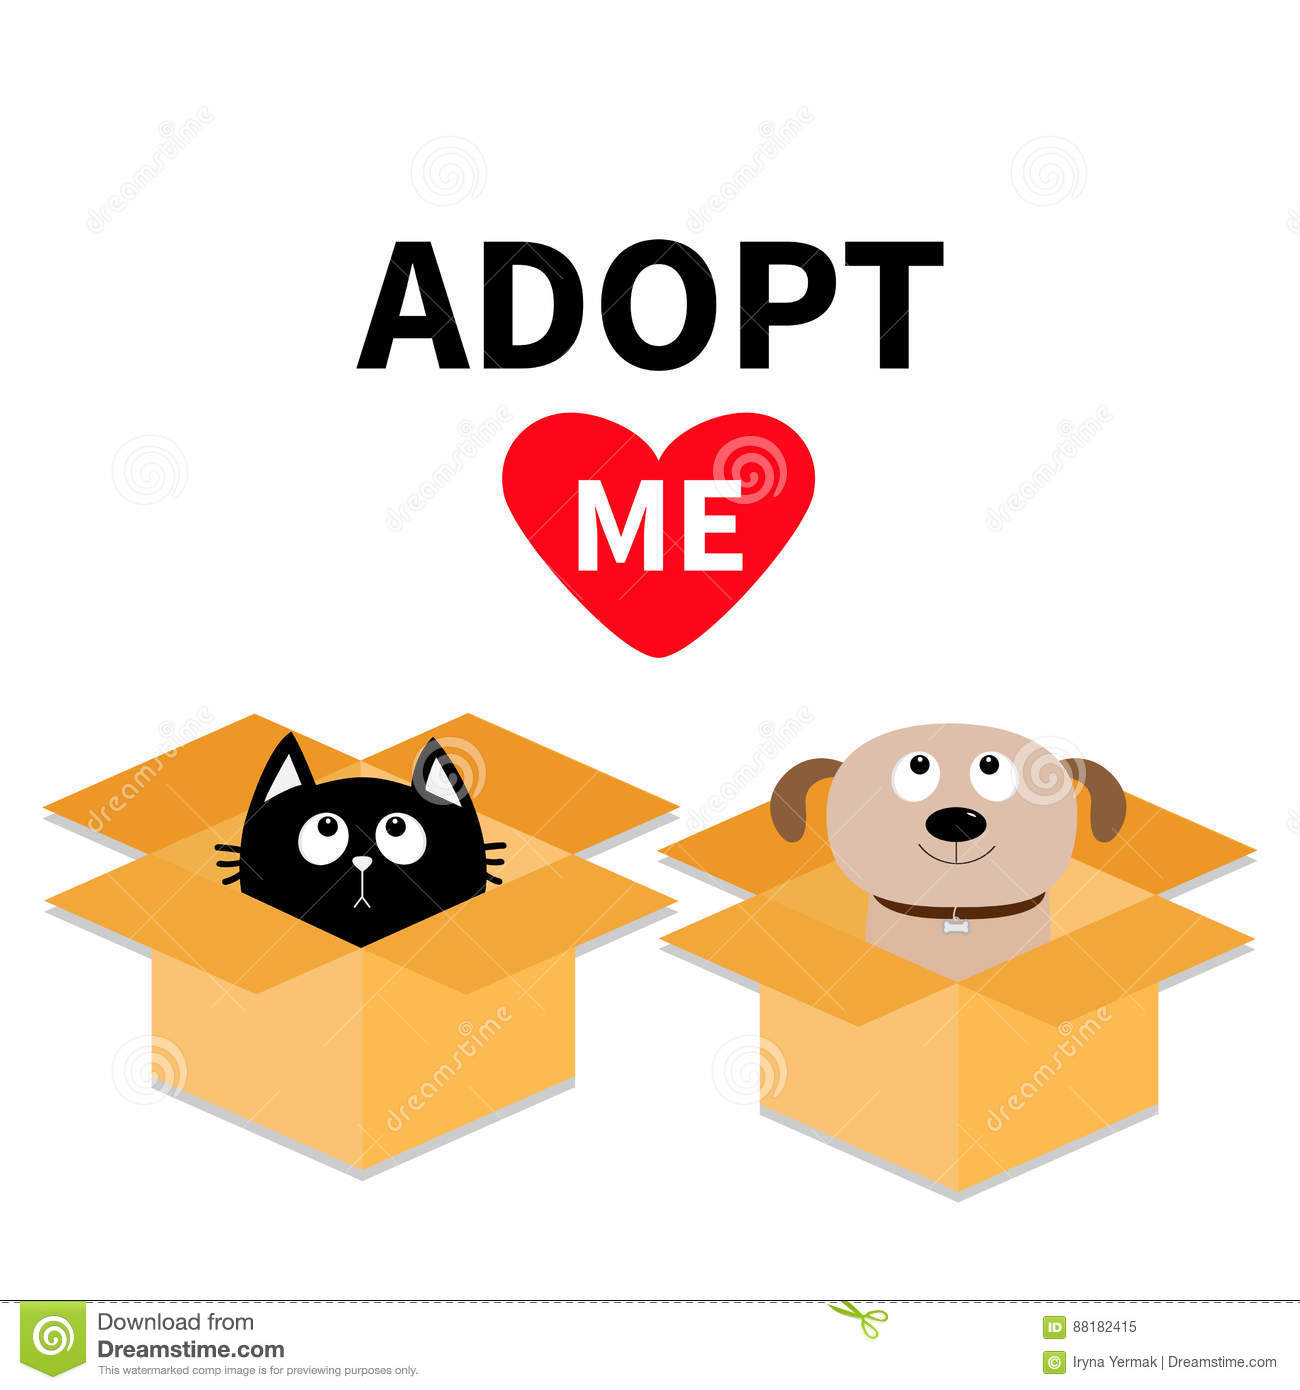 Adopt me. Dont buy. Dog Cat inside opened cardboard package box. Pet adoption. Puppy pooch kitty cat looking up to red heart. Flat